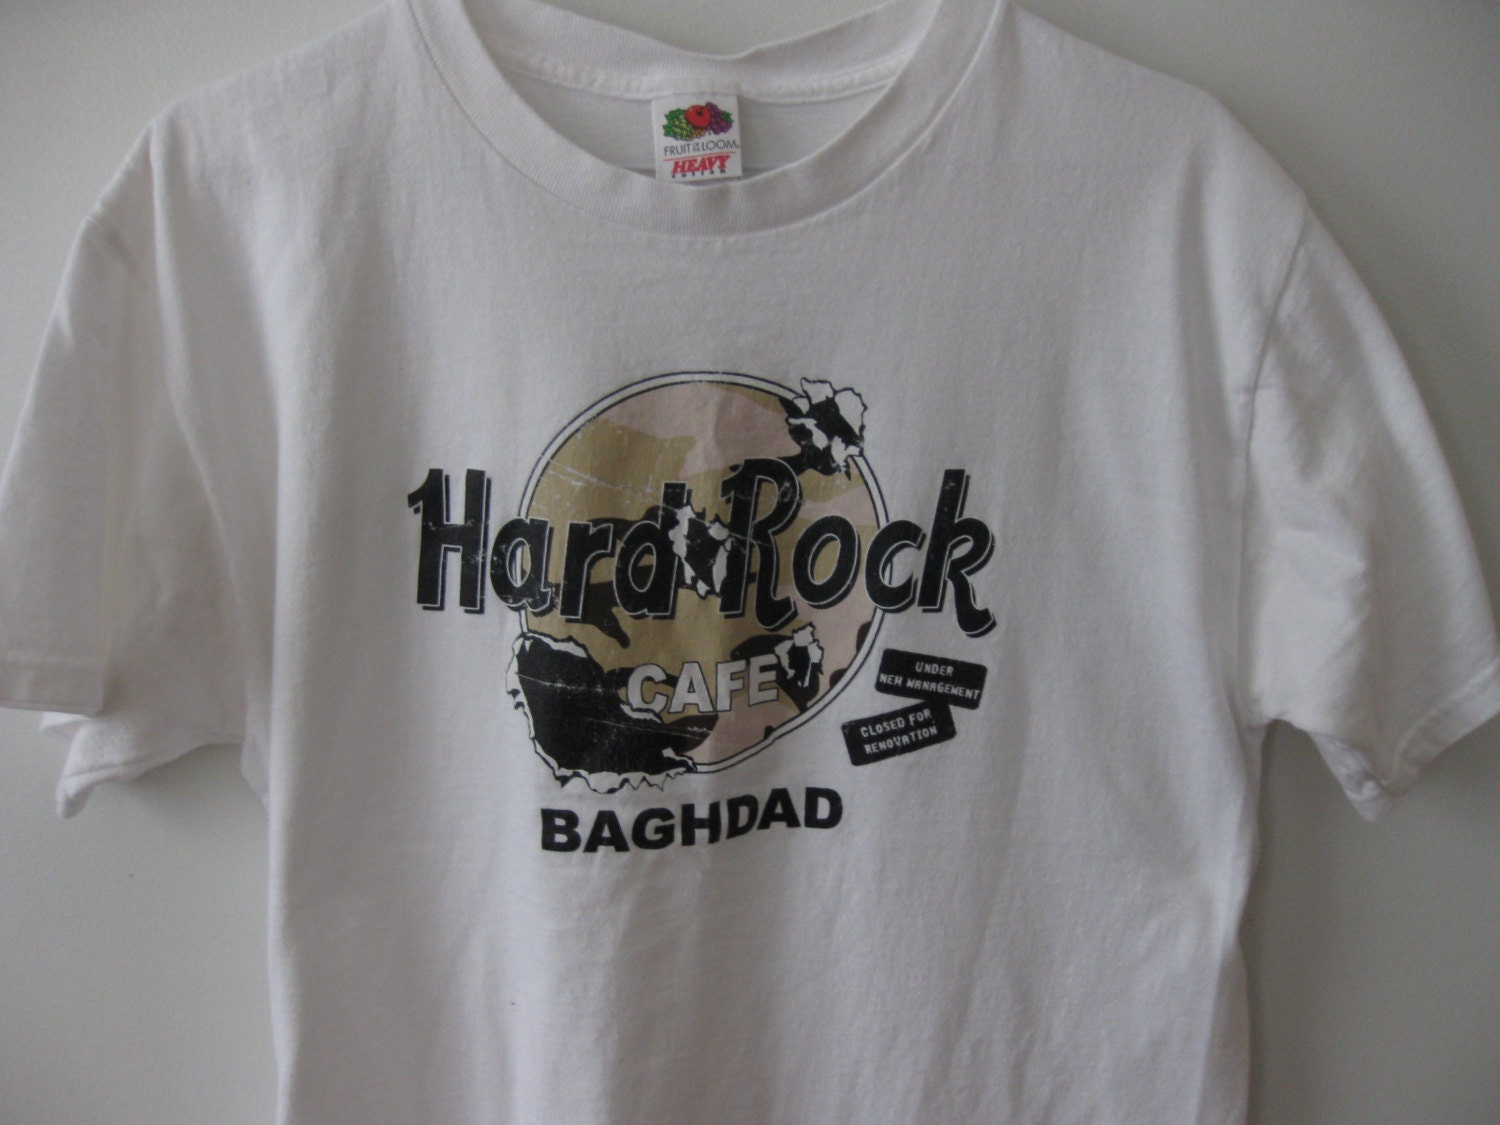 hard rock cafe baghdad t shirt shirt adult large. Black Bedroom Furniture Sets. Home Design Ideas